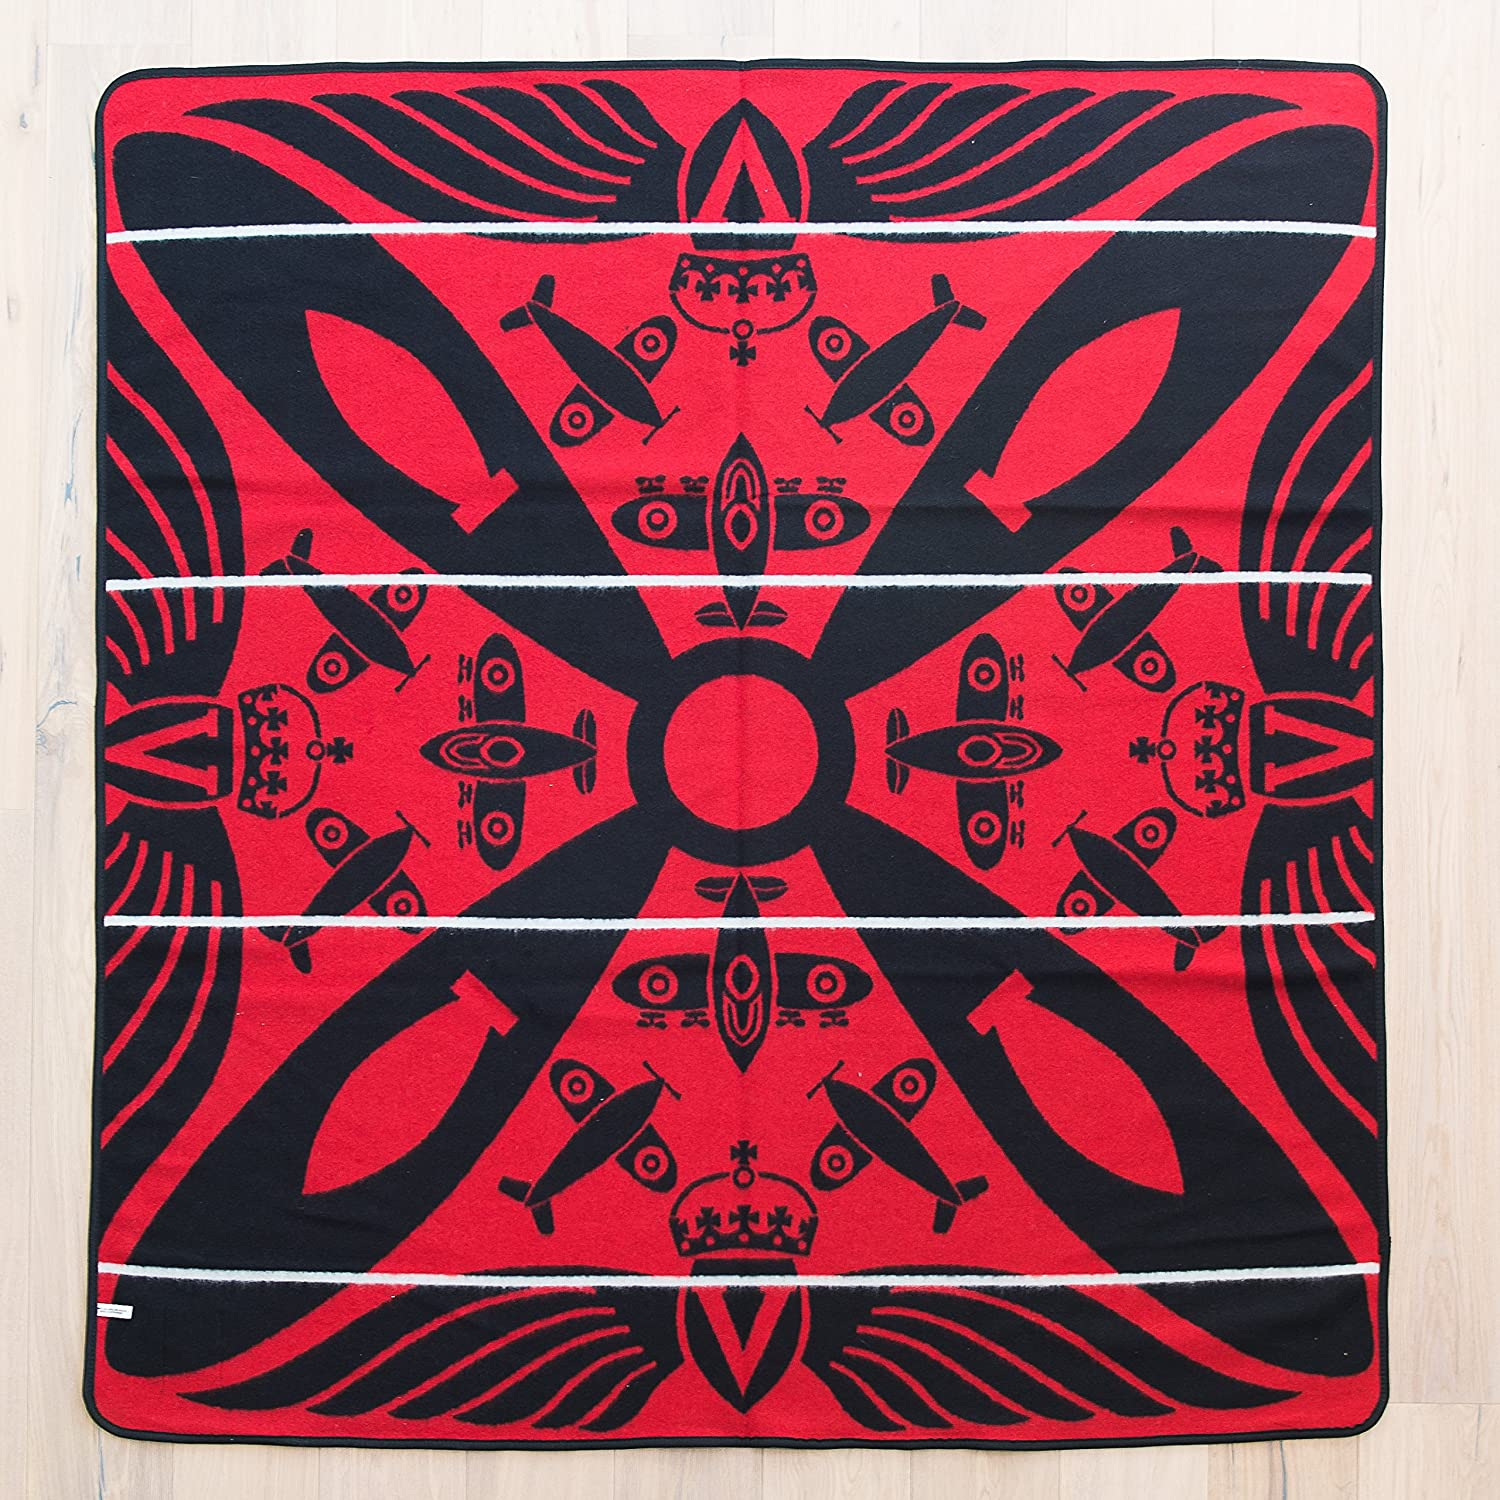 BASOTHO HERITAGE BLANKET - (As seen in Black Panther) Victoria England - Spitfire. (61x 65) Original Quality, Woolen wearing blankets from Lesotho, Southern Africa